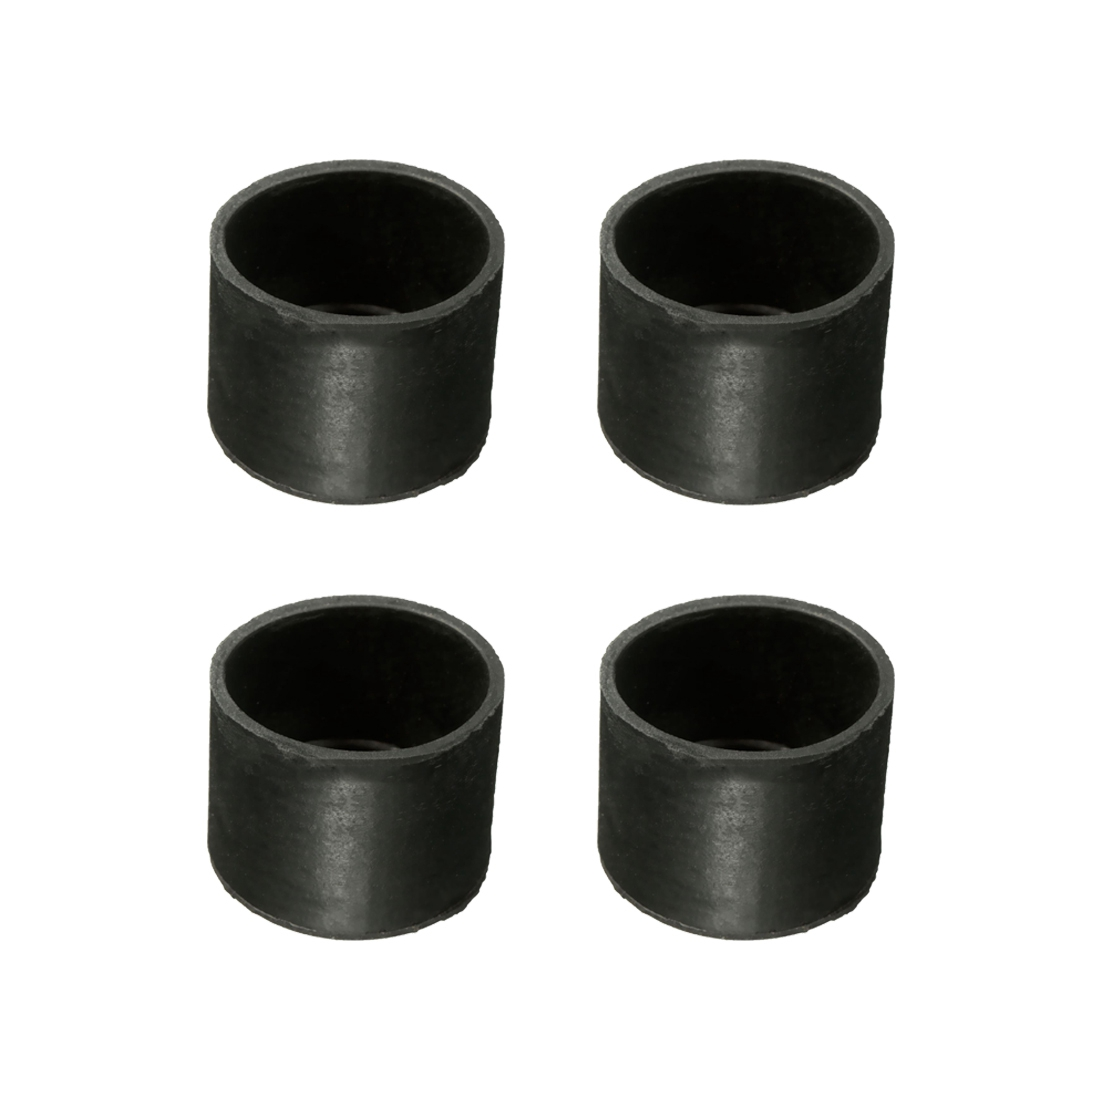 Floor Protectors For Chairs Black Anti Scratch Small Large Rubber Ferrule Floor